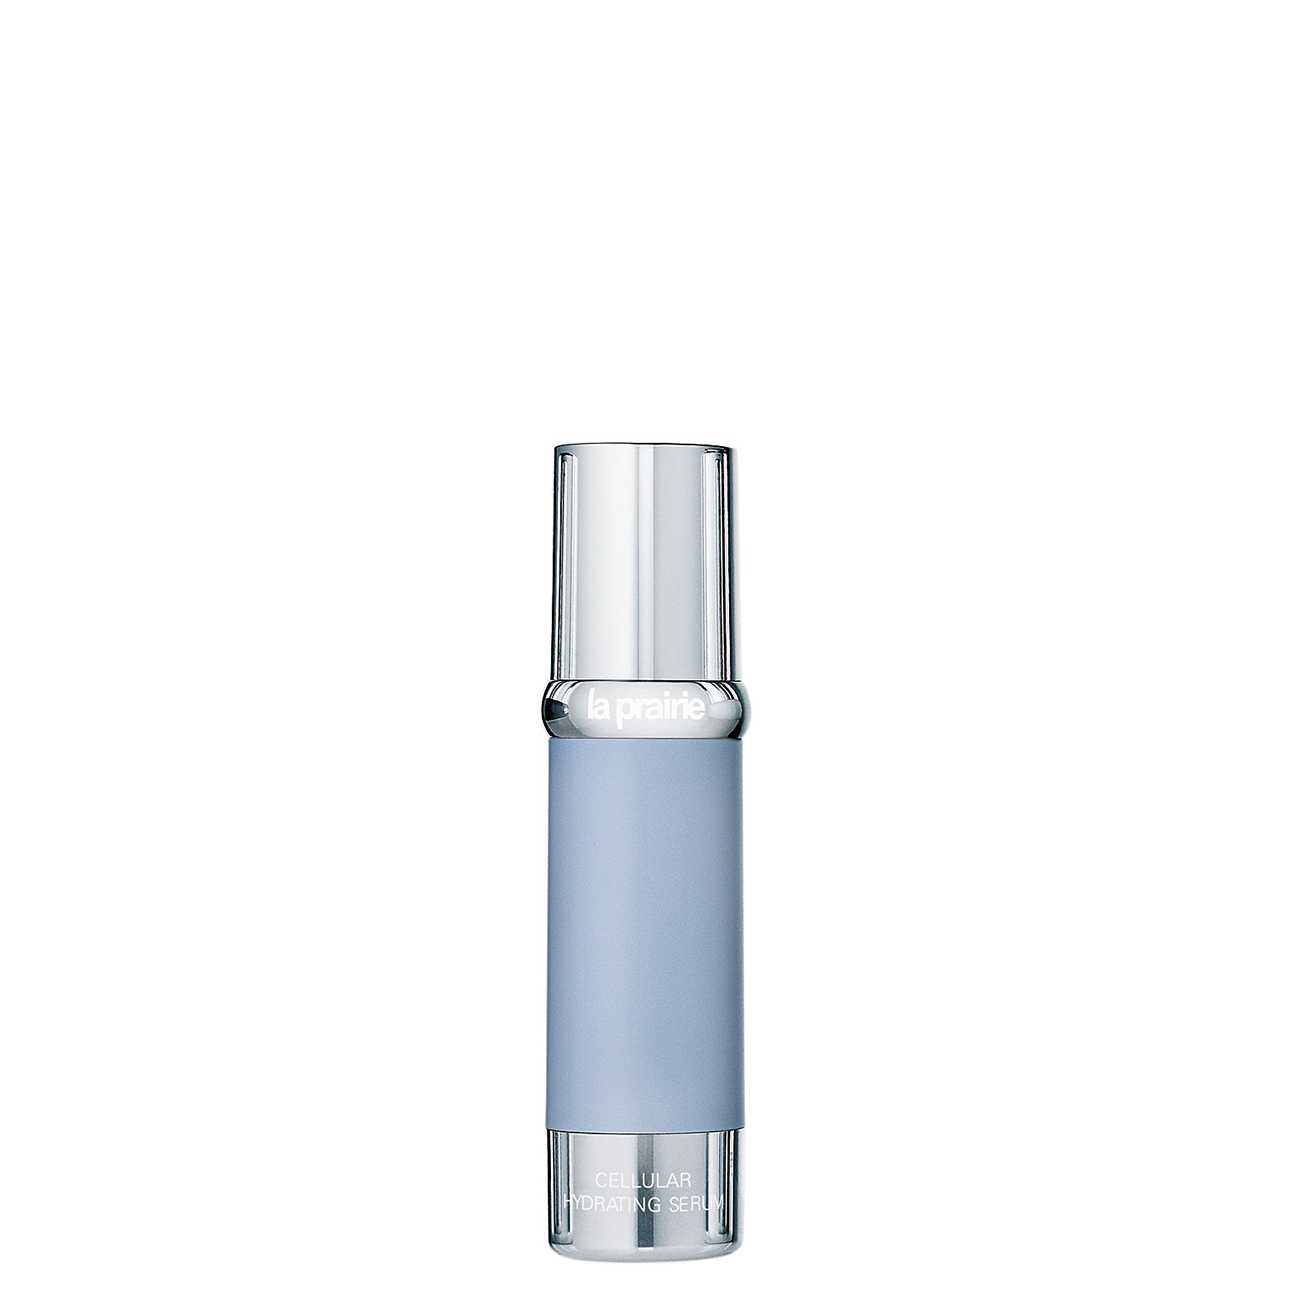 Cellular Hydrating Serum 30 Ml La Prairie imagine 2021 bestvalue.eu